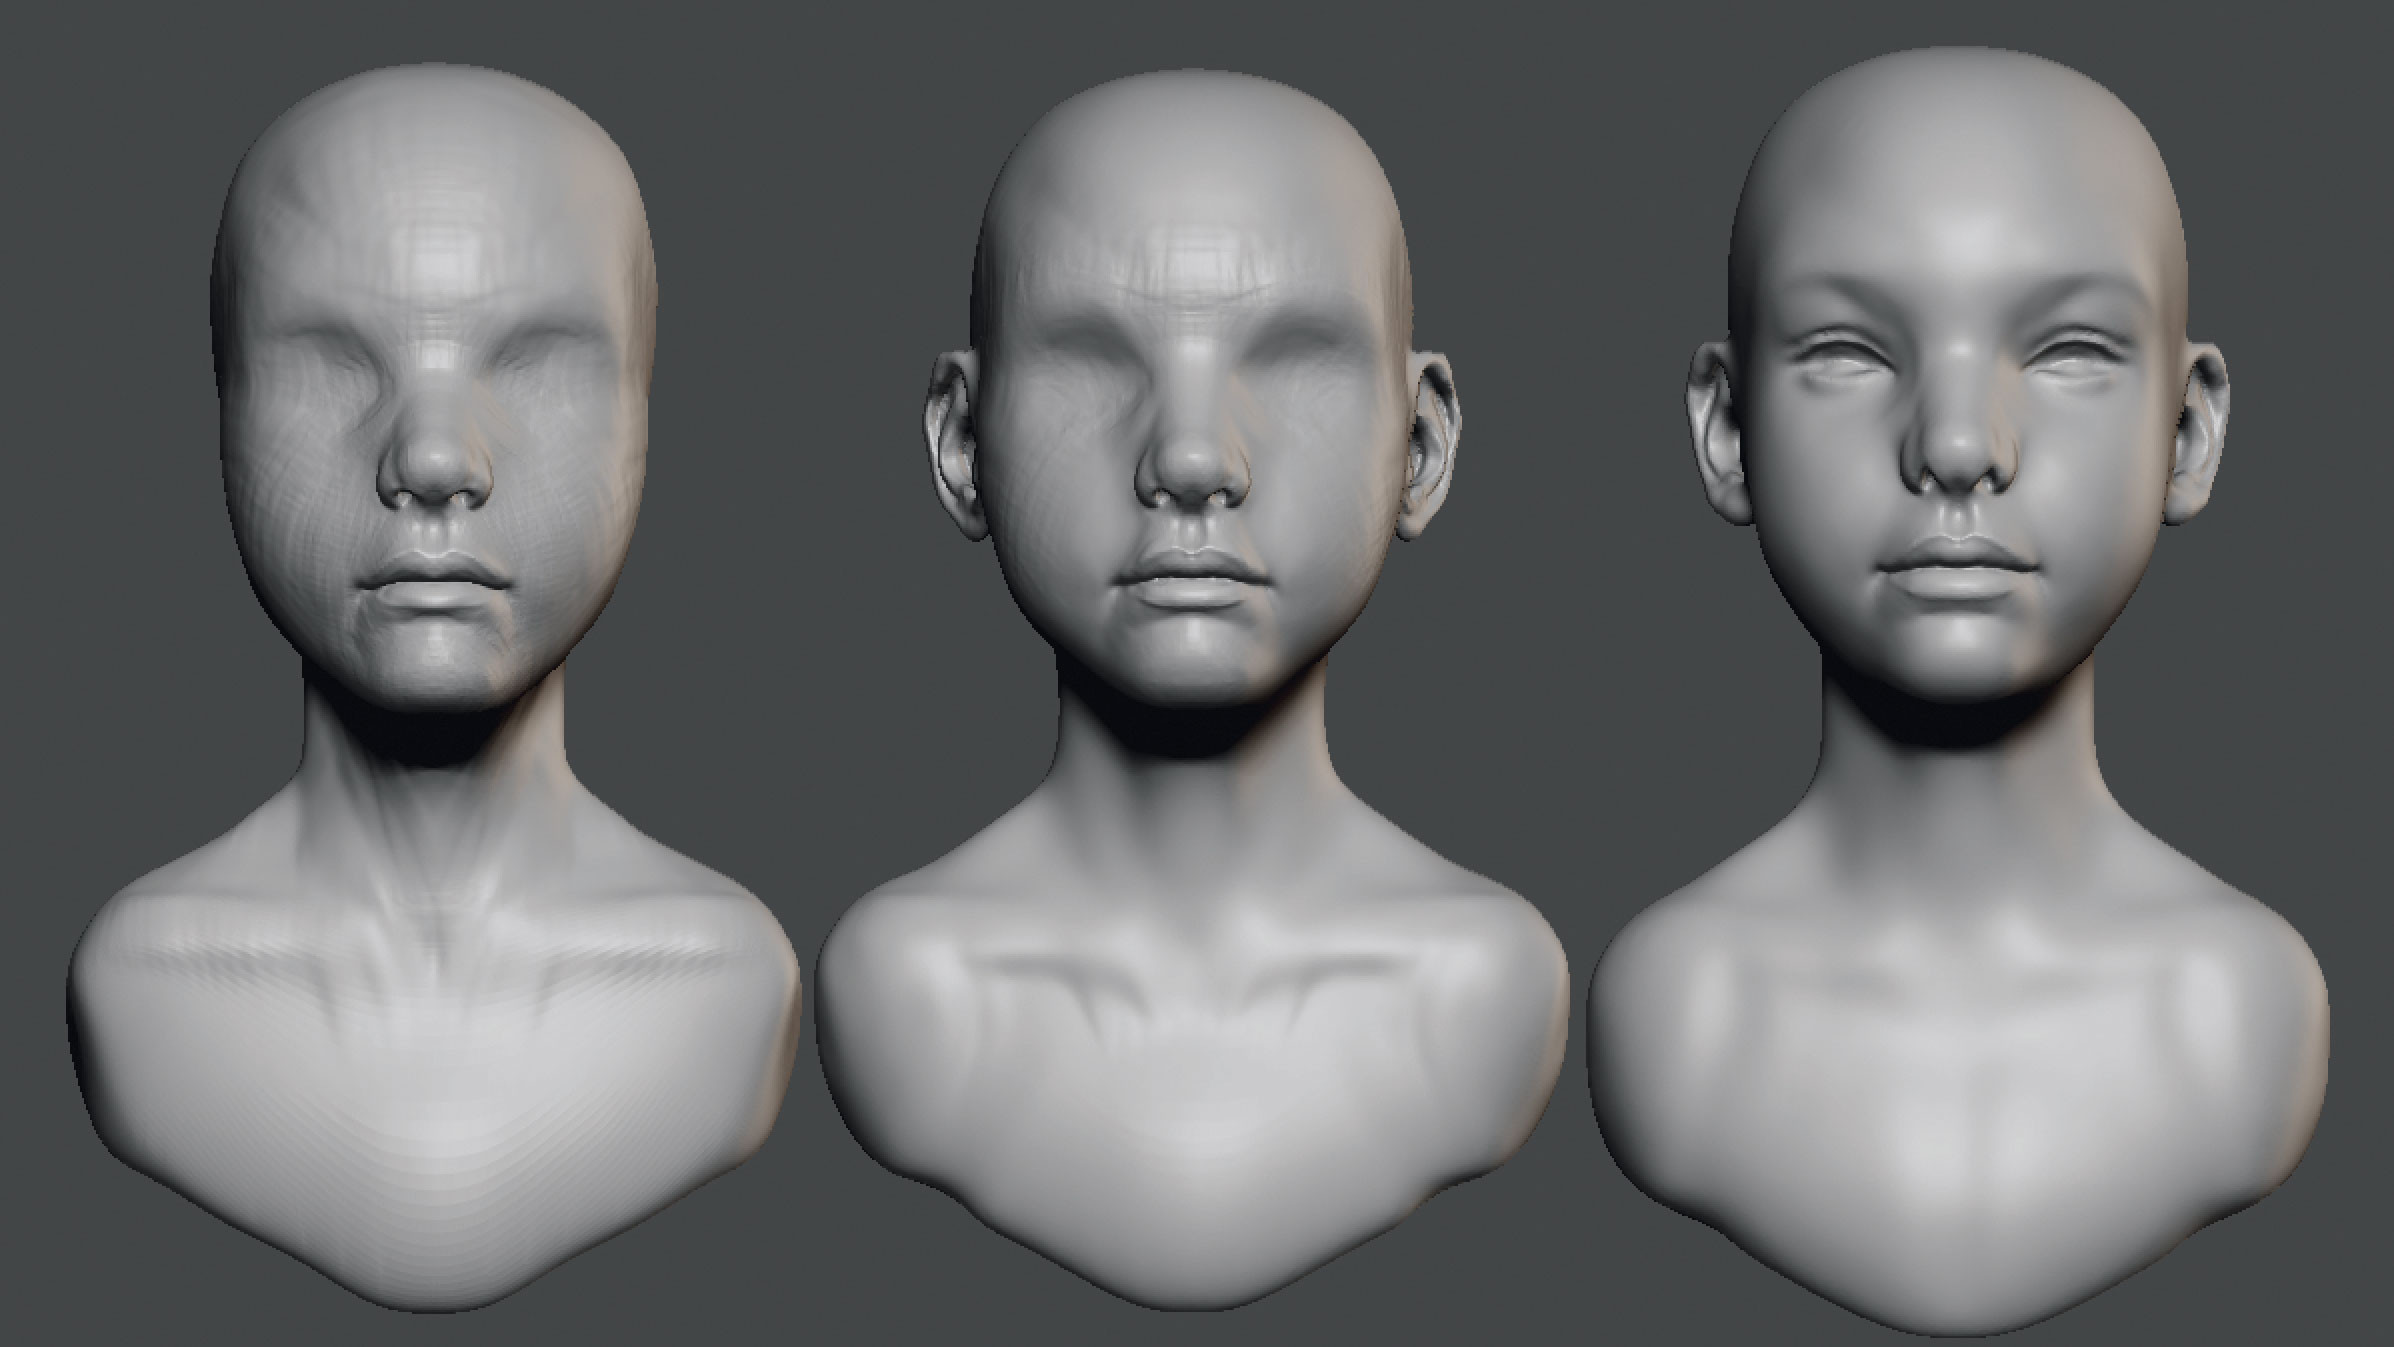 Master personality in 3D illustrations: find the character's face